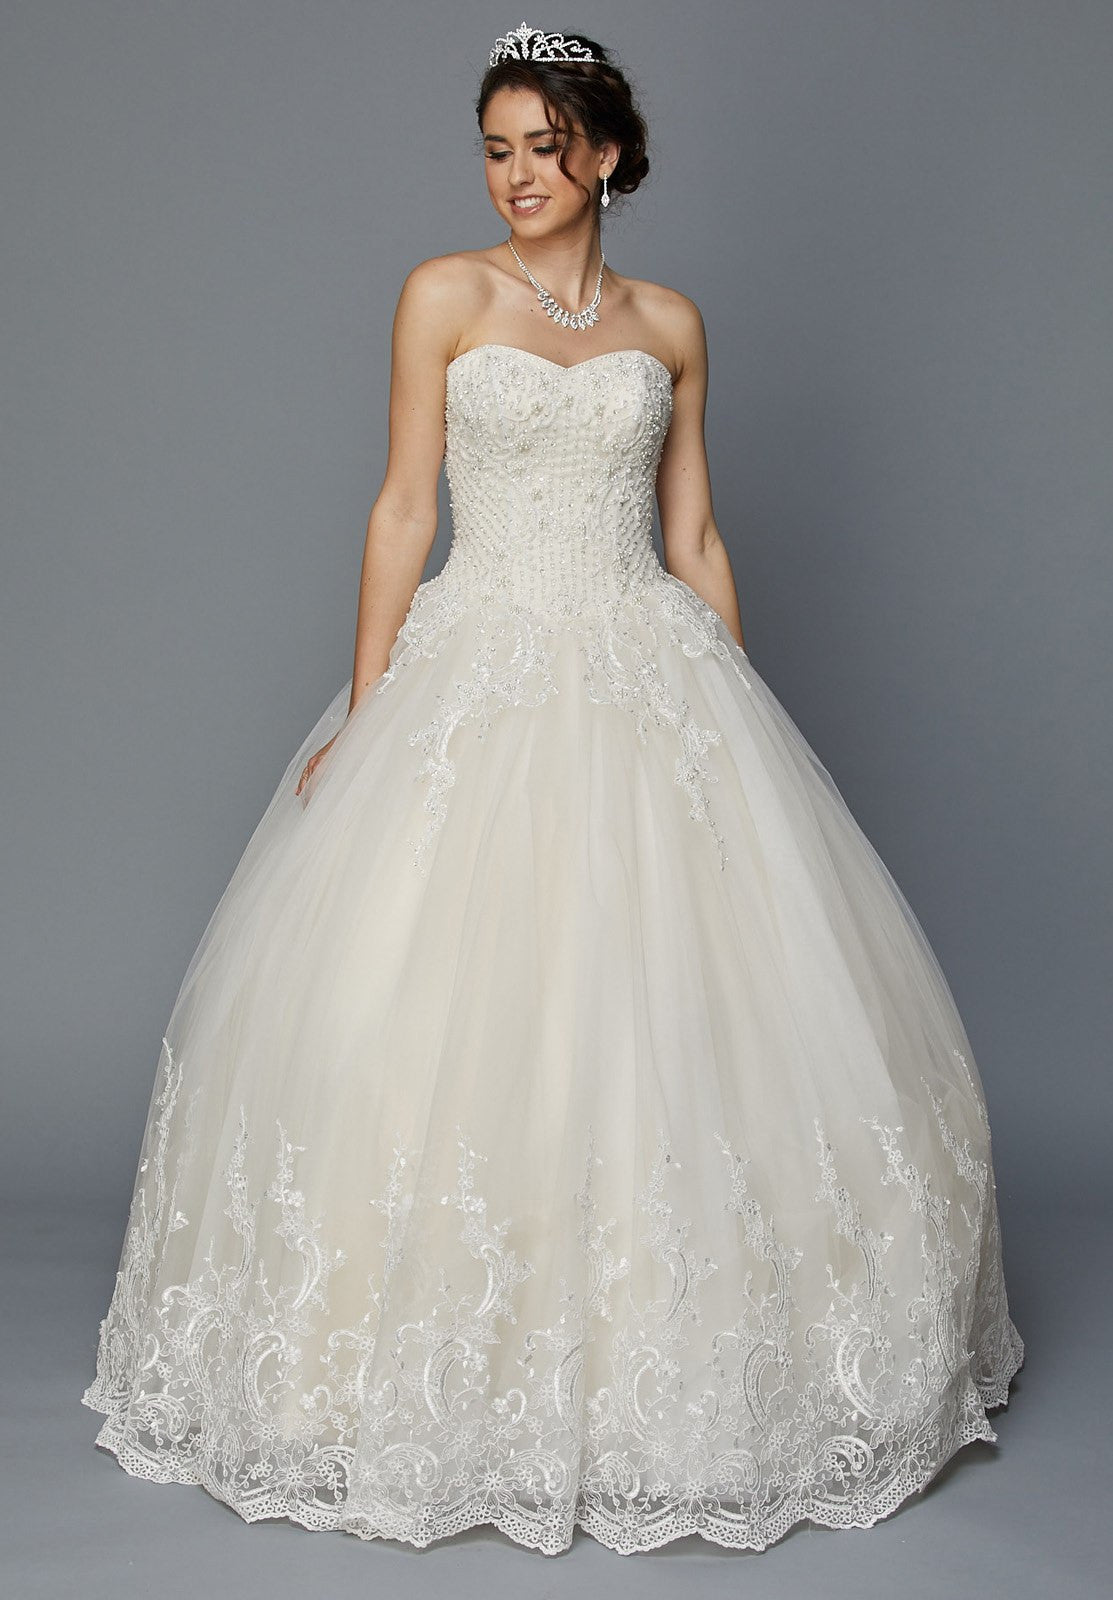 Juliet 353 Sweetheart Neckline White Strapless Wedding Gown ...